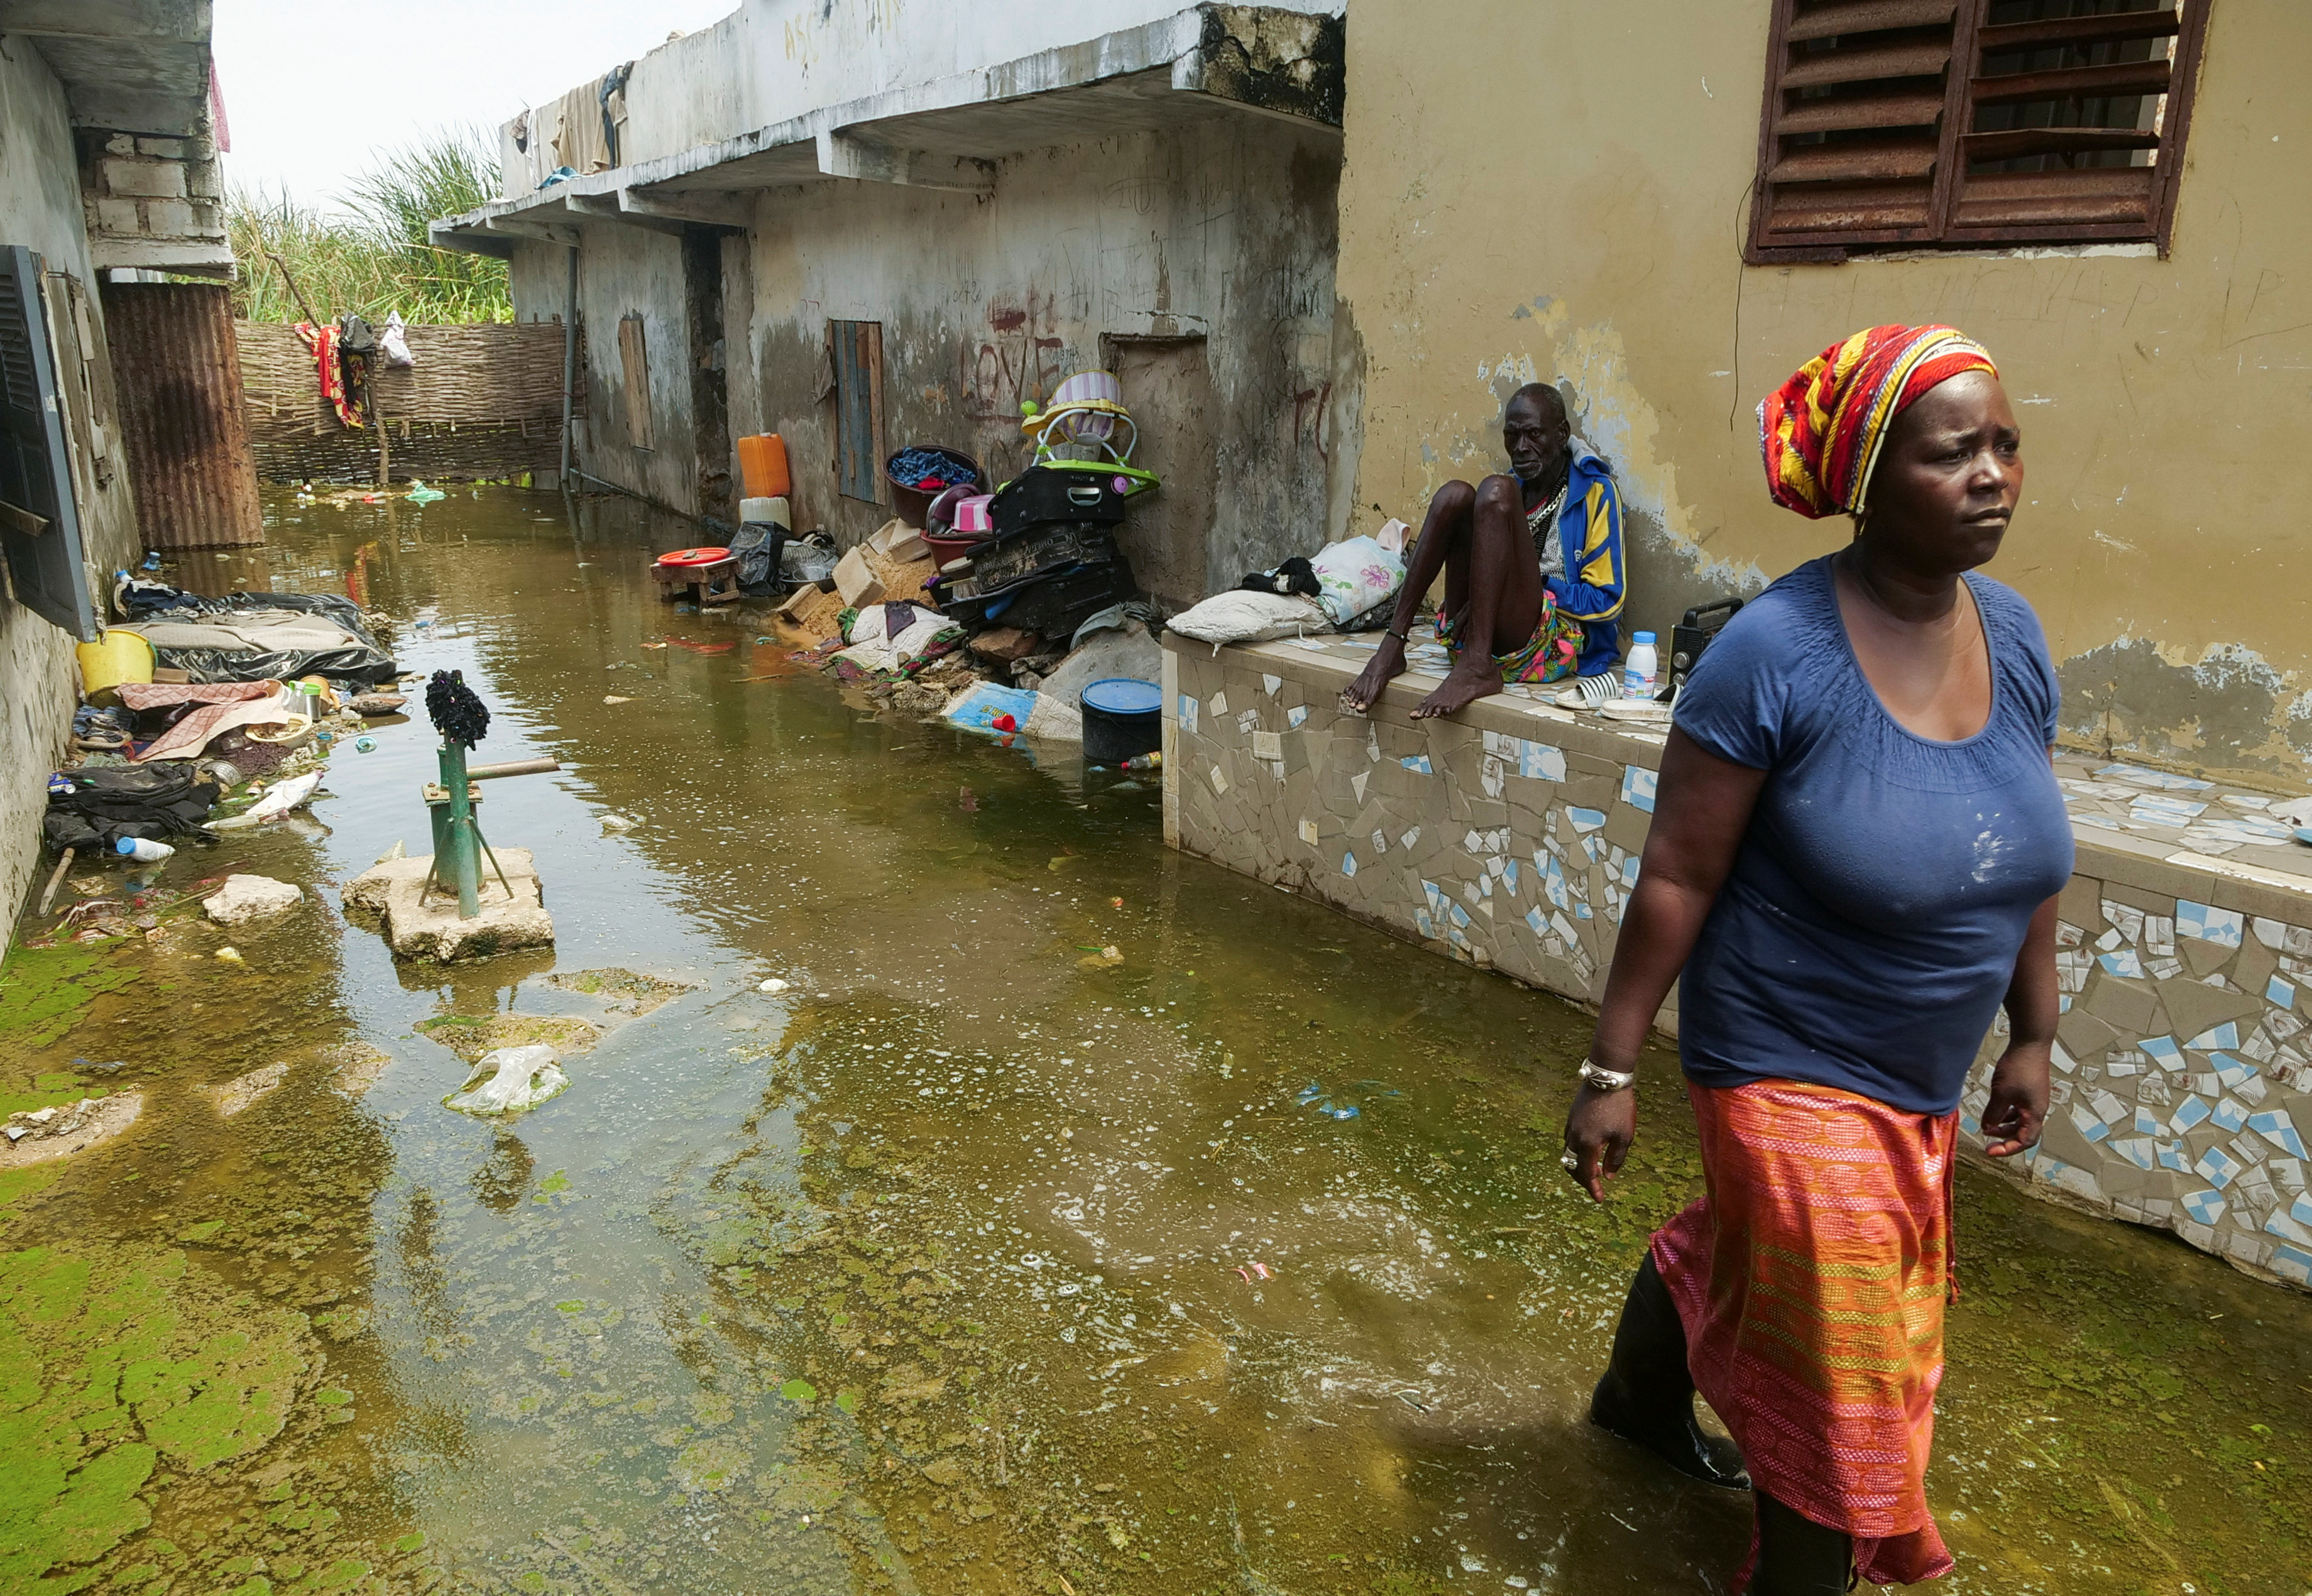 Mrs. Aicha Sy and Mr. Issa Camara, residents, are pictured in the flooded alley of their home after heavy rains in Yeumbeul district on the outskirts of Dakar, Senegal September 16, 2020. Picture taken September 16, 2020. REUTERS/Christophe Van Der Perre - RC2V4J9OM246